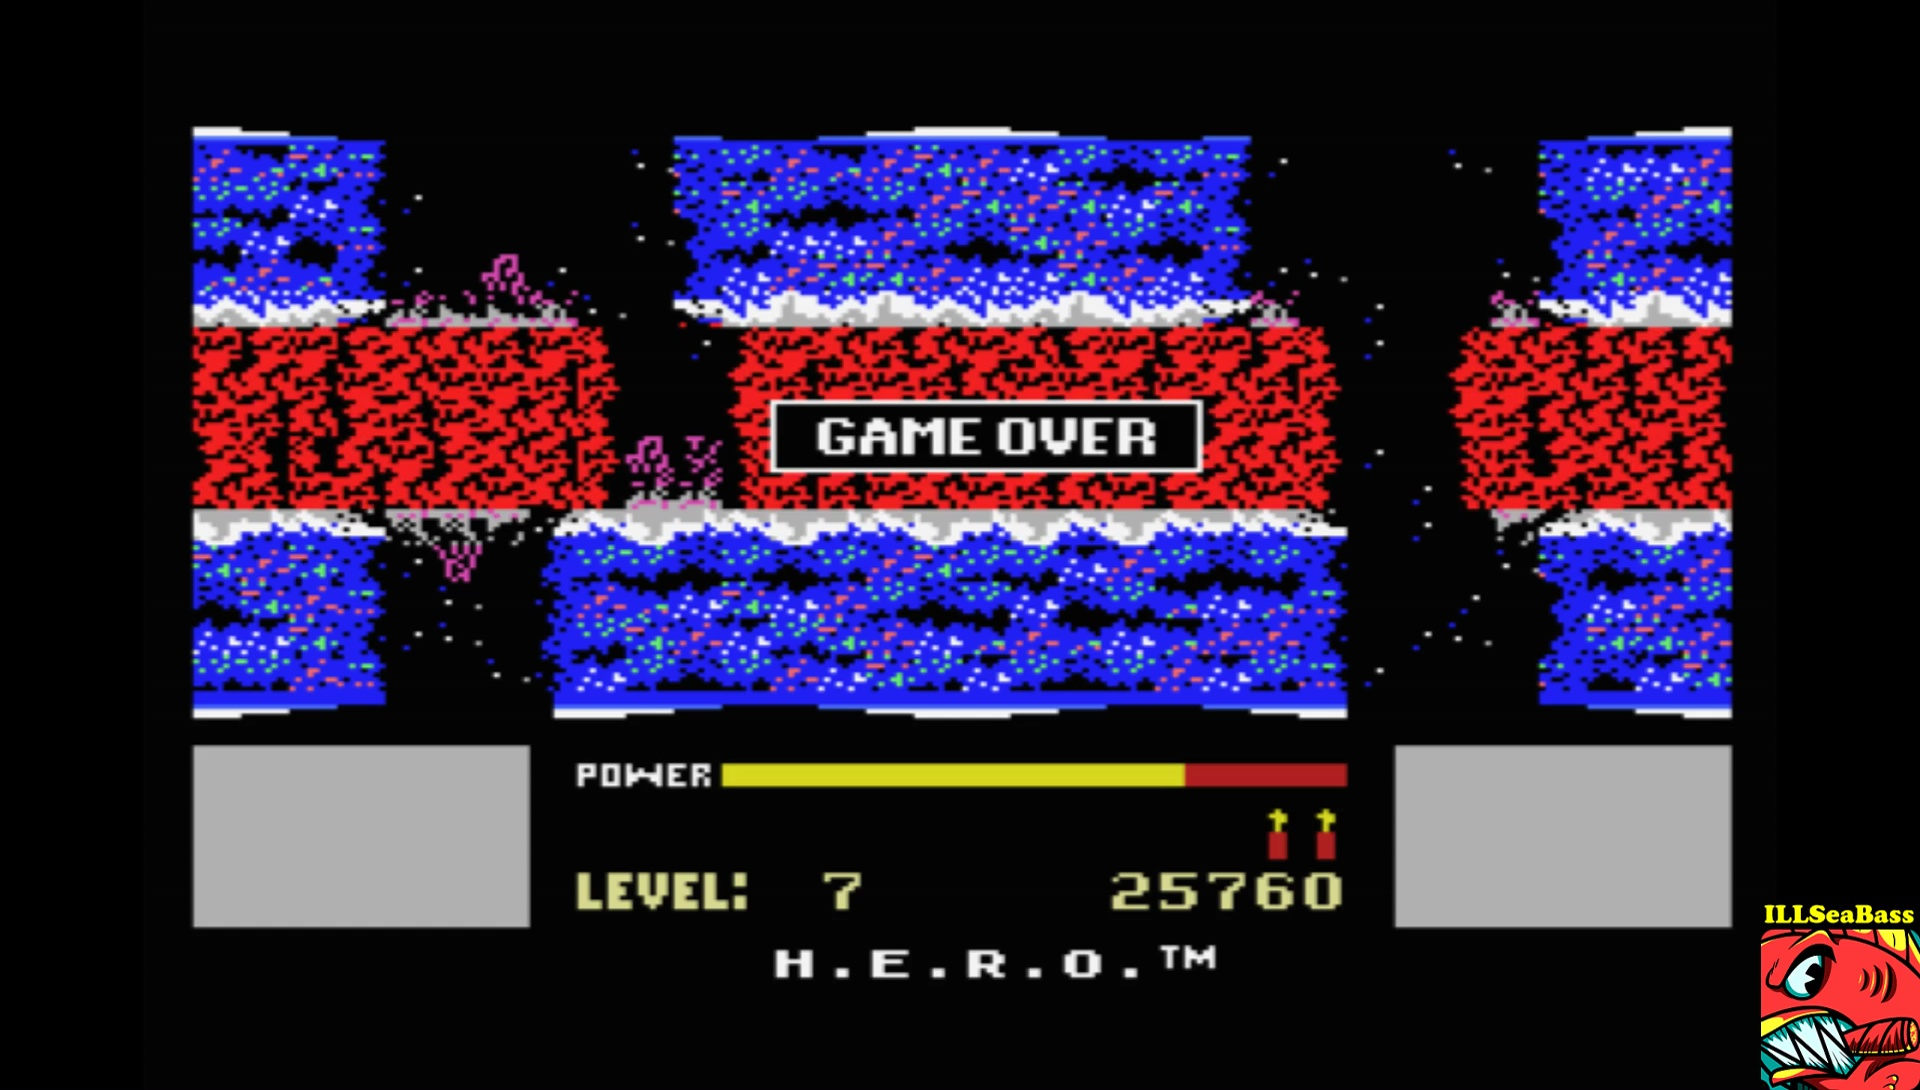 ILLSeaBass: H.E.R.O. [Level 1] (MSX Emulated) 25,760 points on 2017-08-21 13:43:46